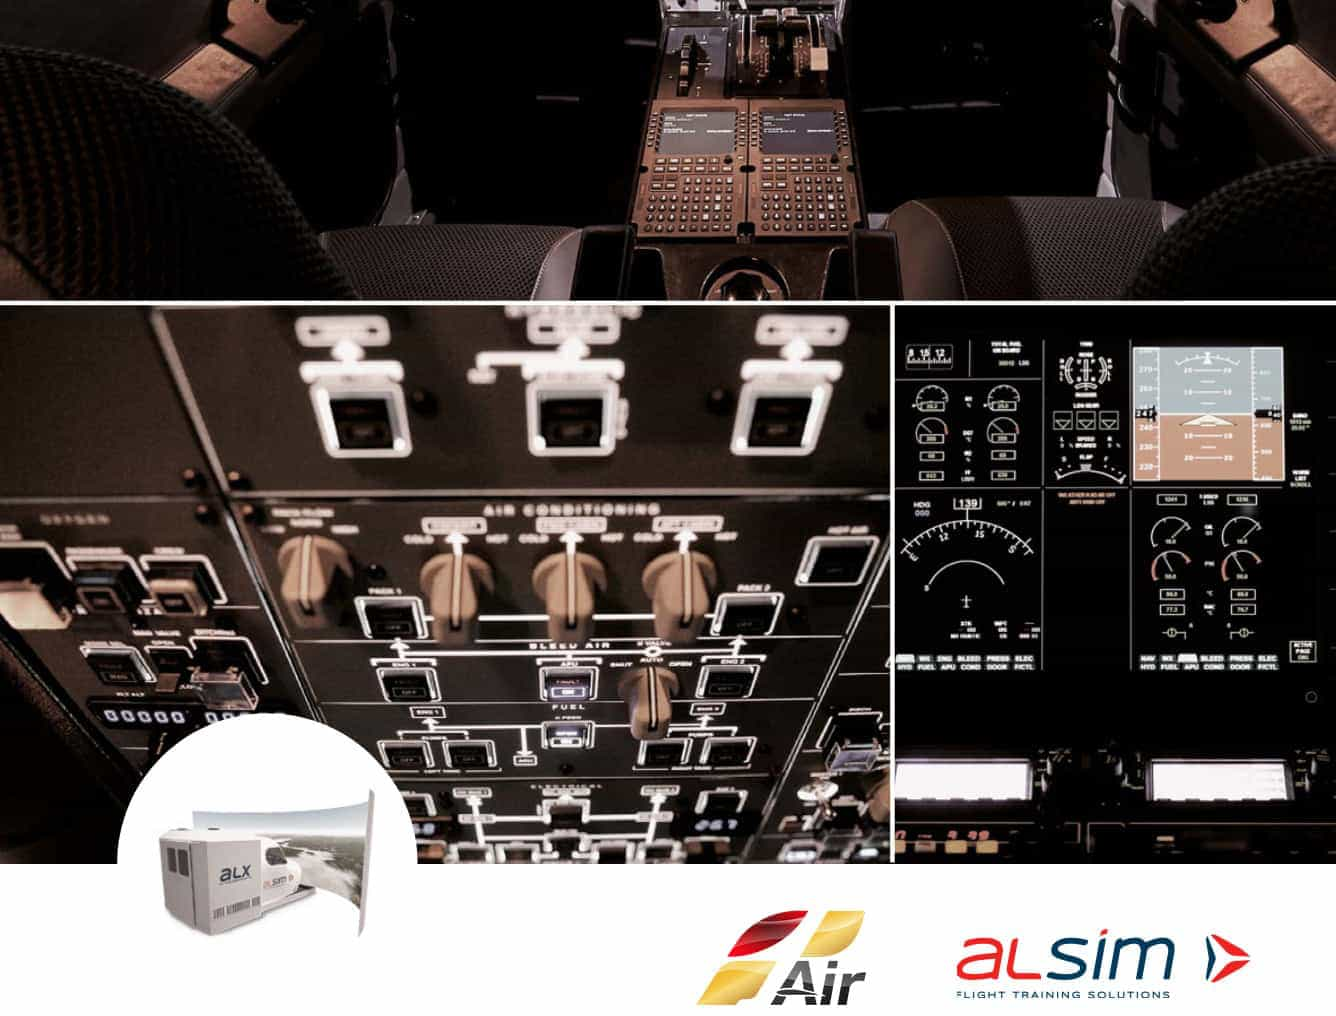 Top panel simulator flight alsim alx cockpit instruments